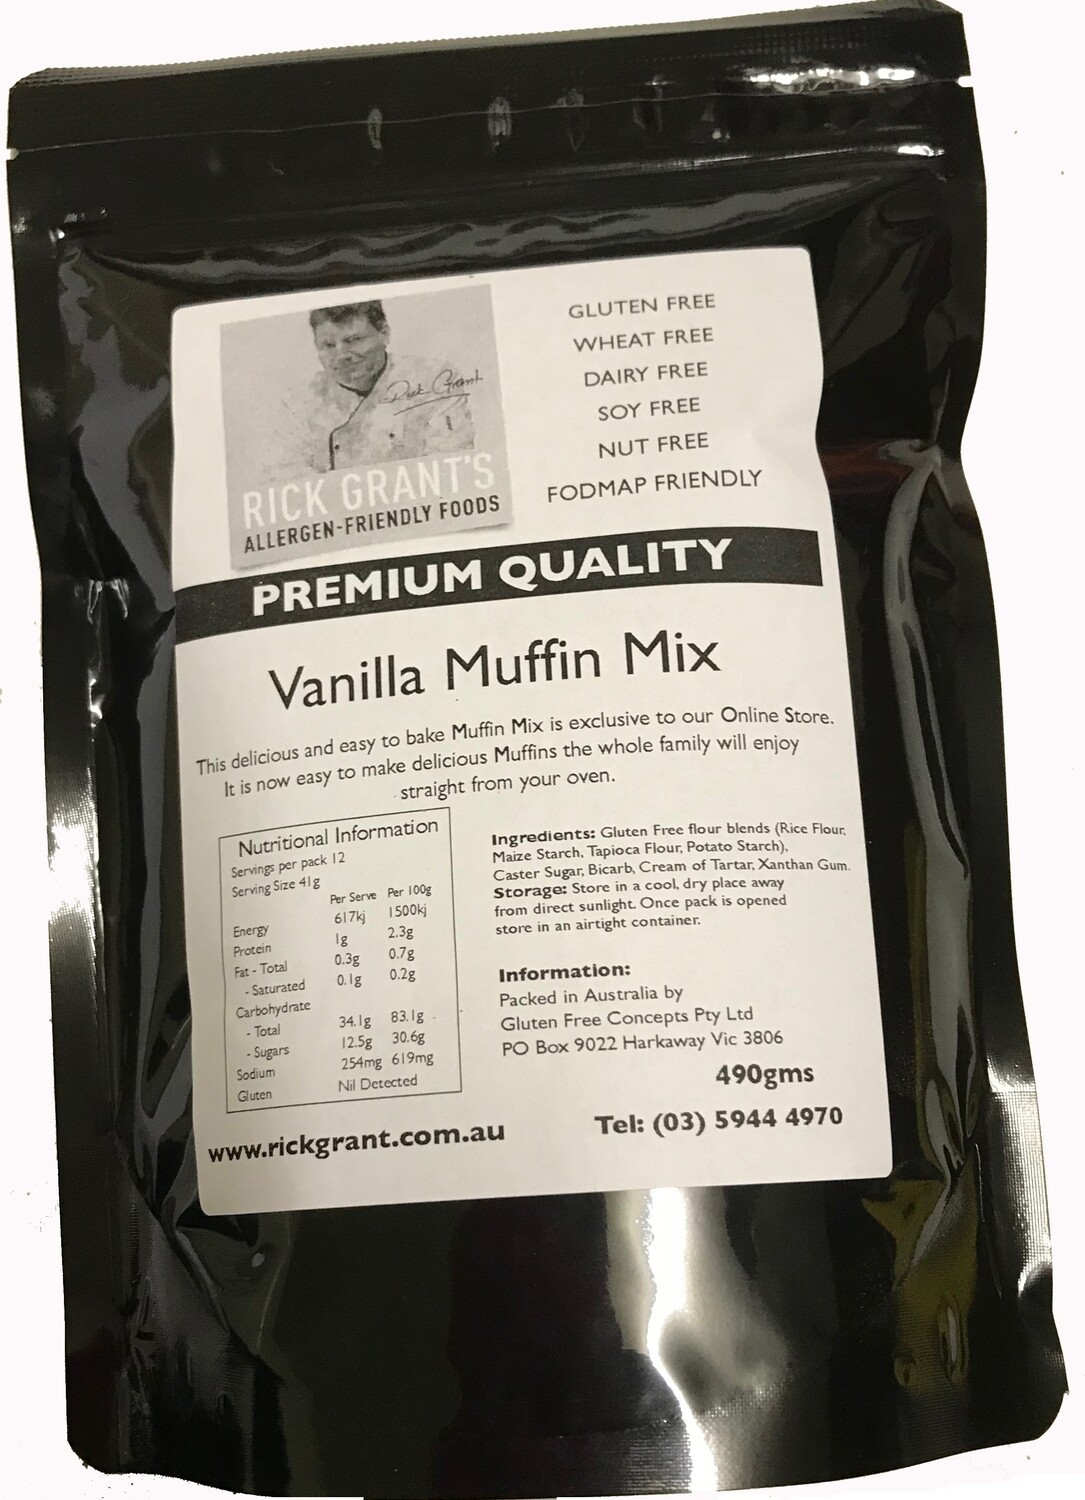 Vanilla Muffin Mix - Easy to use Mix. Makes 12 Muffins, great for school lunches.